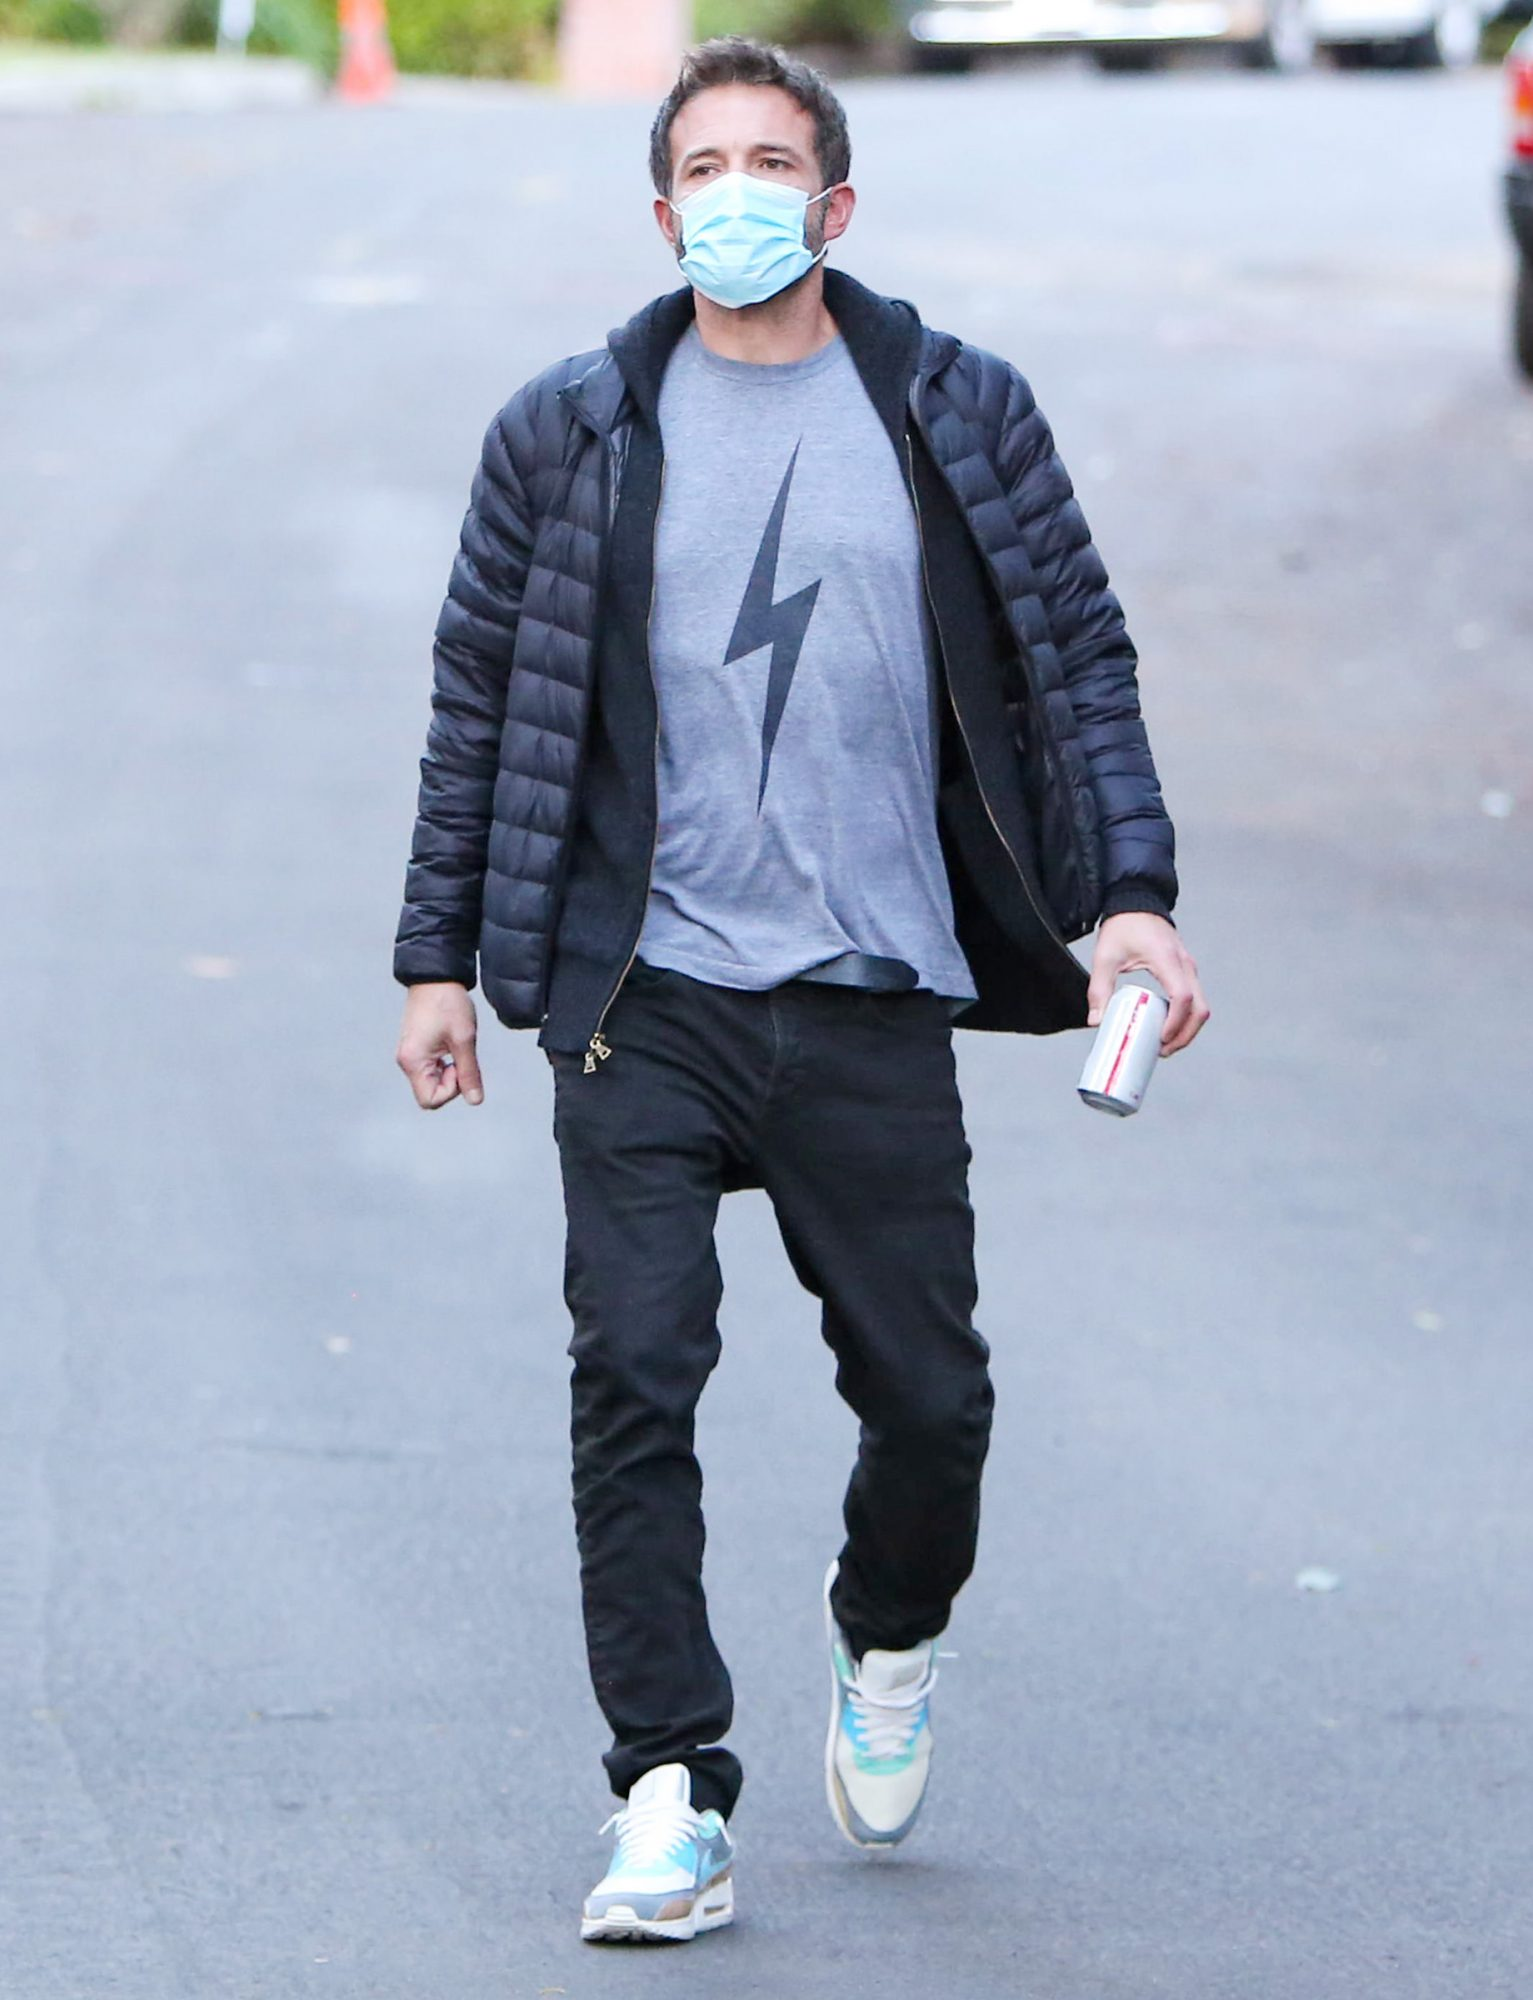 Ben Affleck is seen wearing a jacket and Nike sneakers